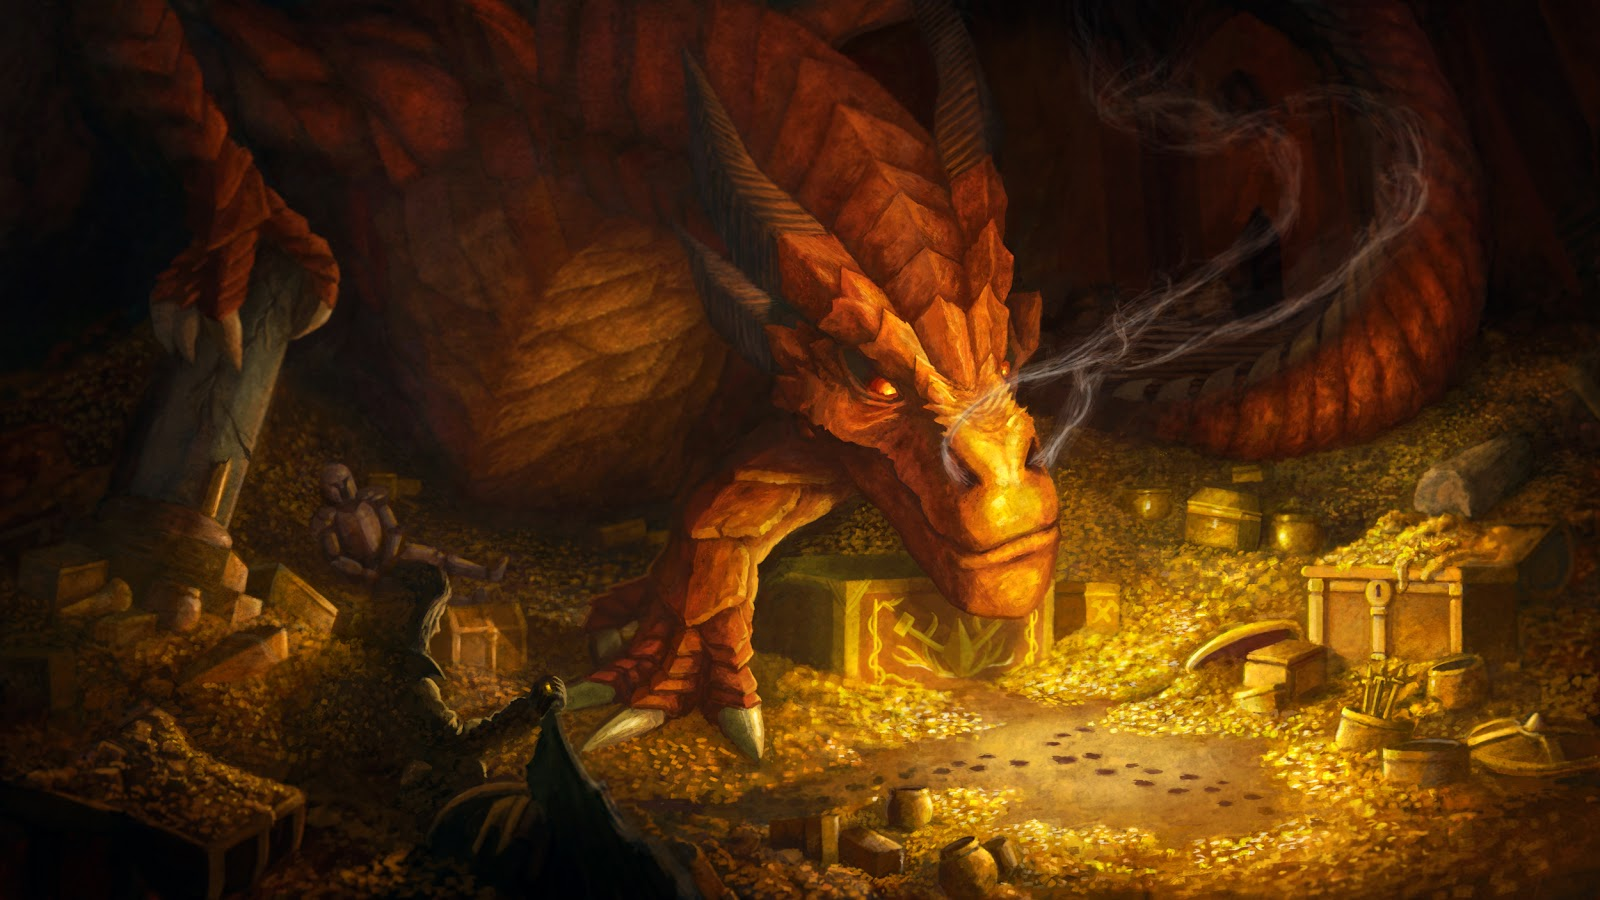 For Version As Of 0410 The Hobbit Desolation Smaug Dragon Wallpaper